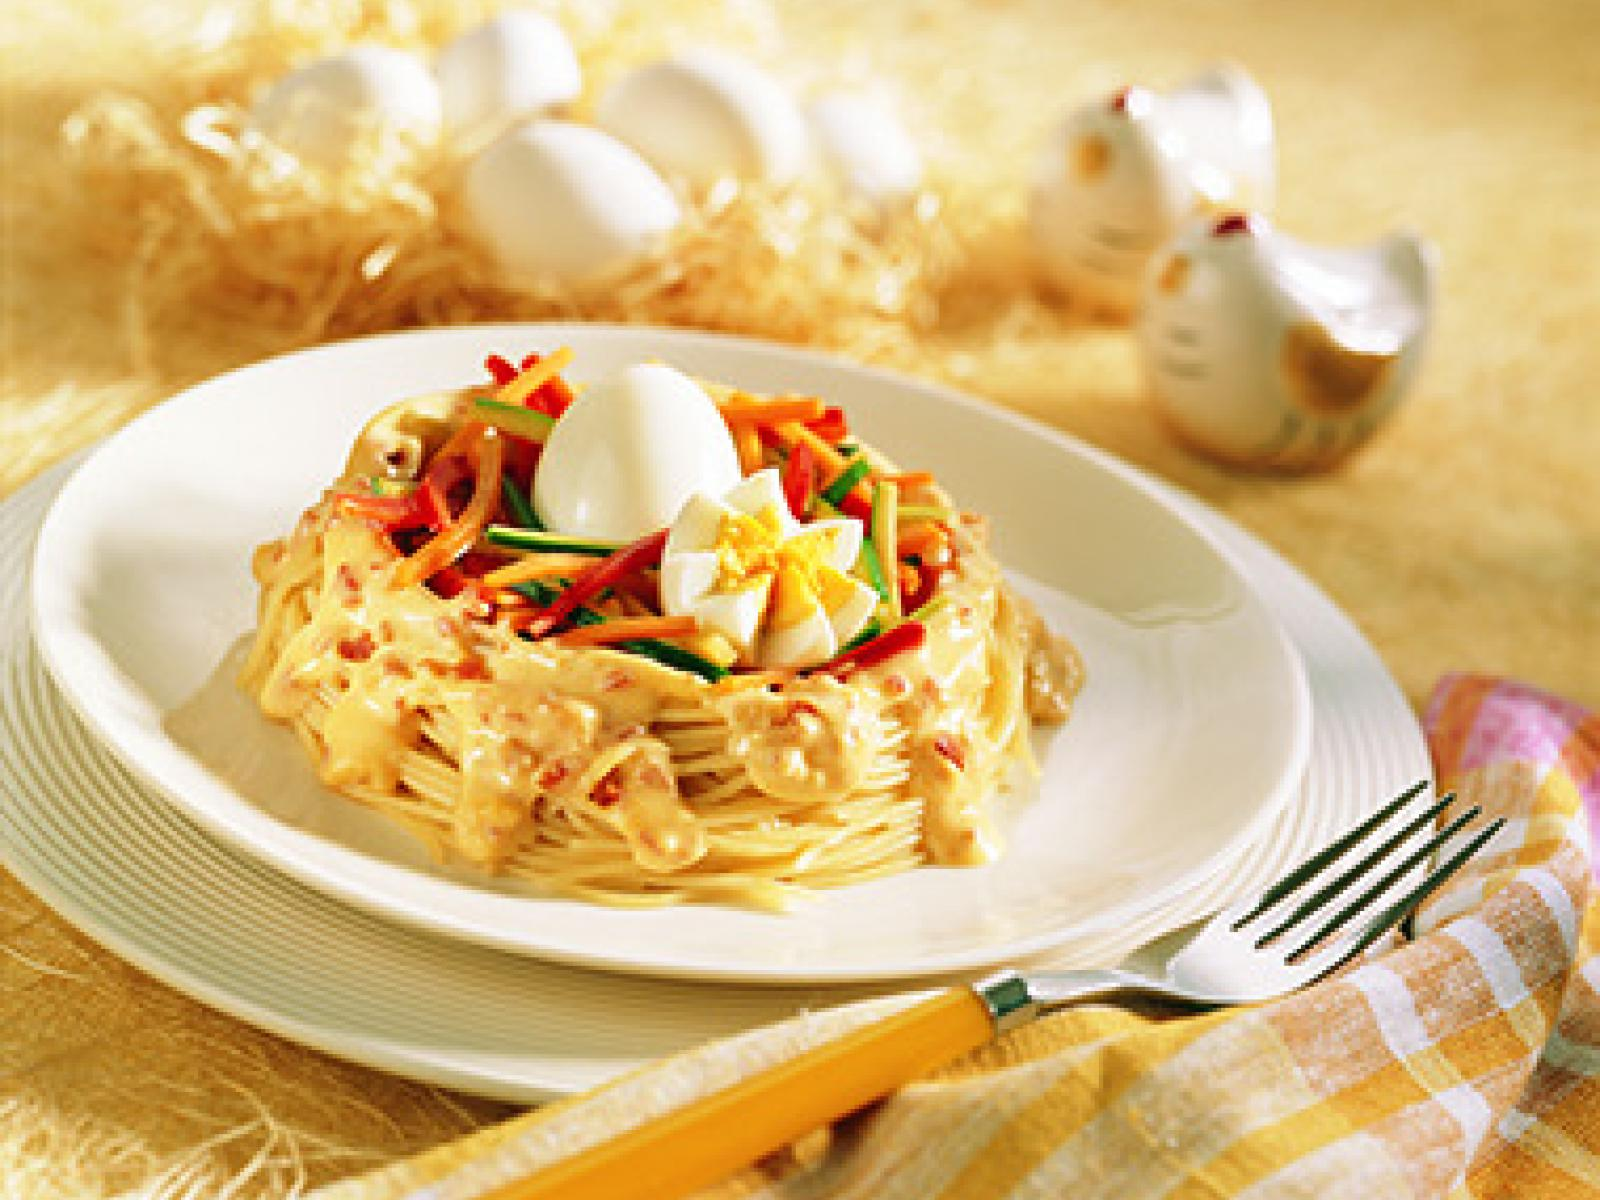 Eggs in Pasta Nests with Cheese Sauce